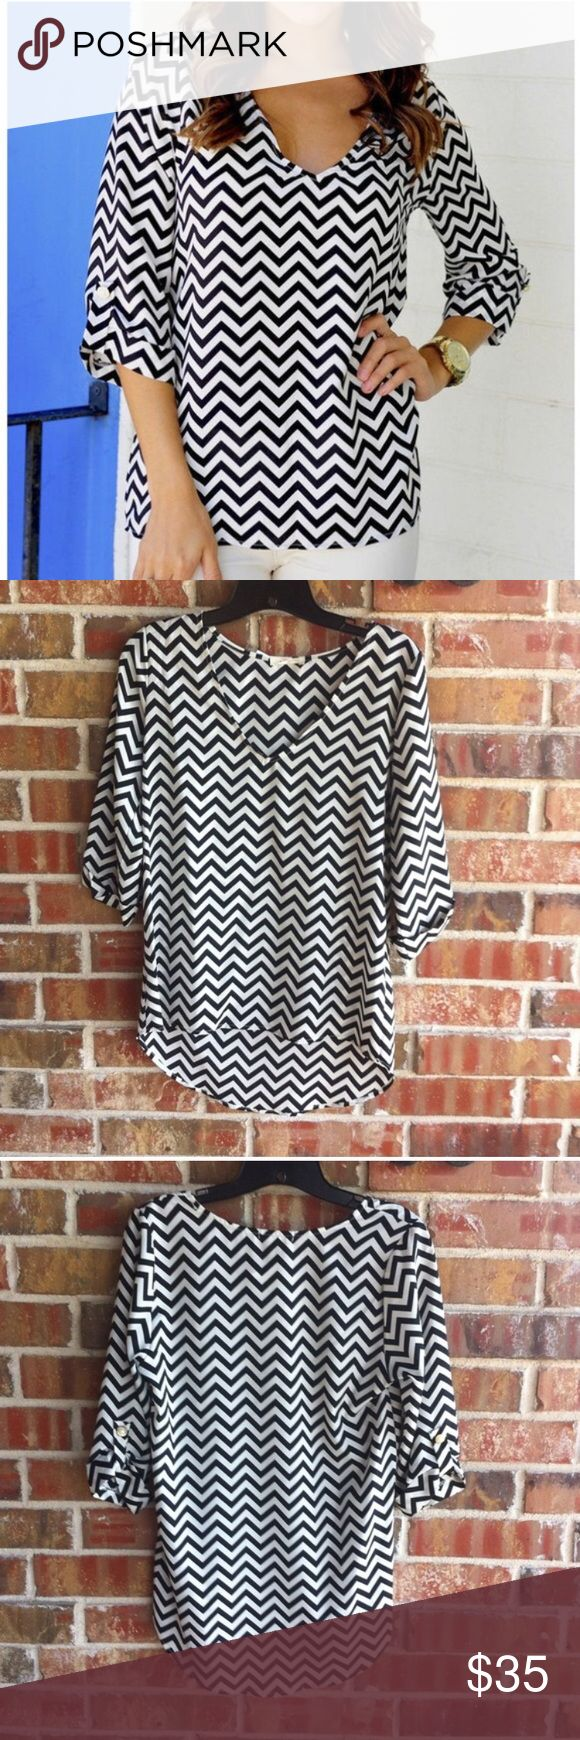 NWT Everly chevron blouse, size small NWT Everly chevron blouse, size small. Polyester. Everly Tops Blouses